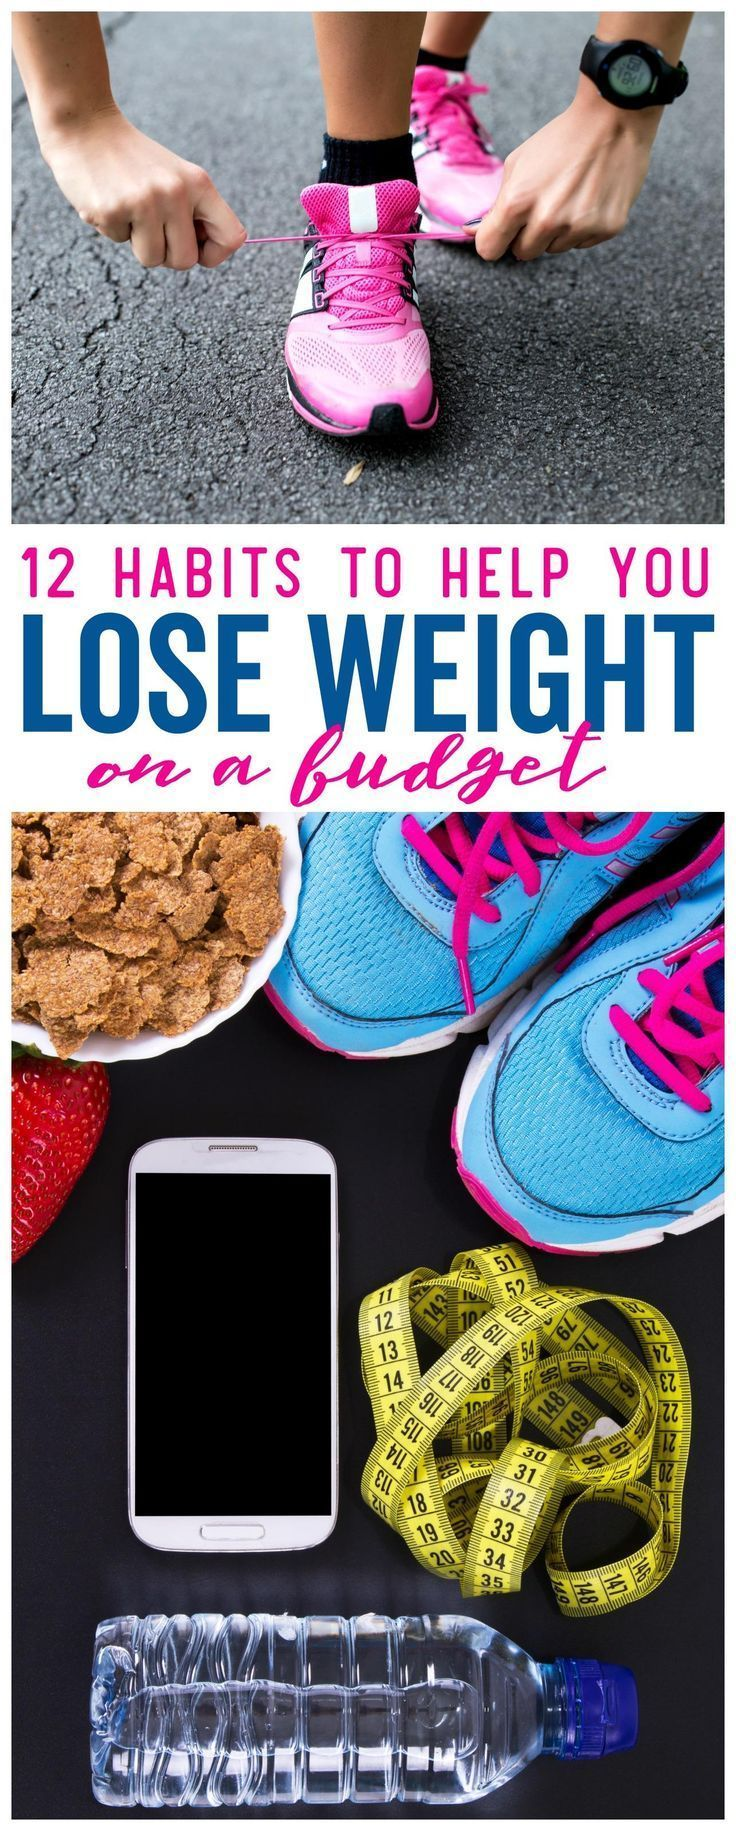 12 Habits to Help You Lose Weight on a Budget, Get In Shape, Eat Less and Look Your Best on a budget...